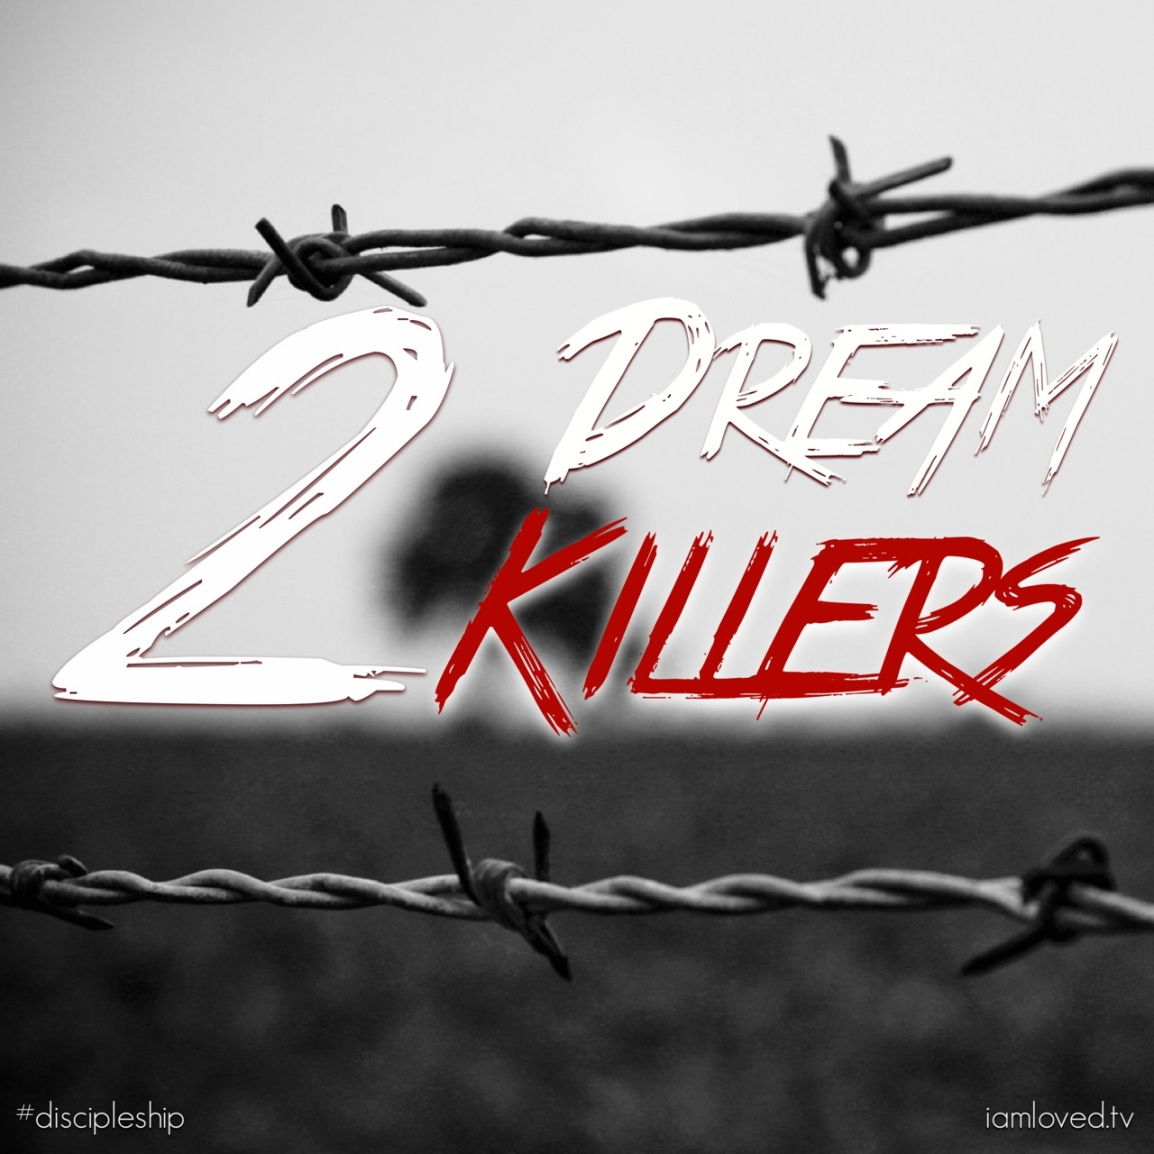 Watch Out For These 2 Dream Killers